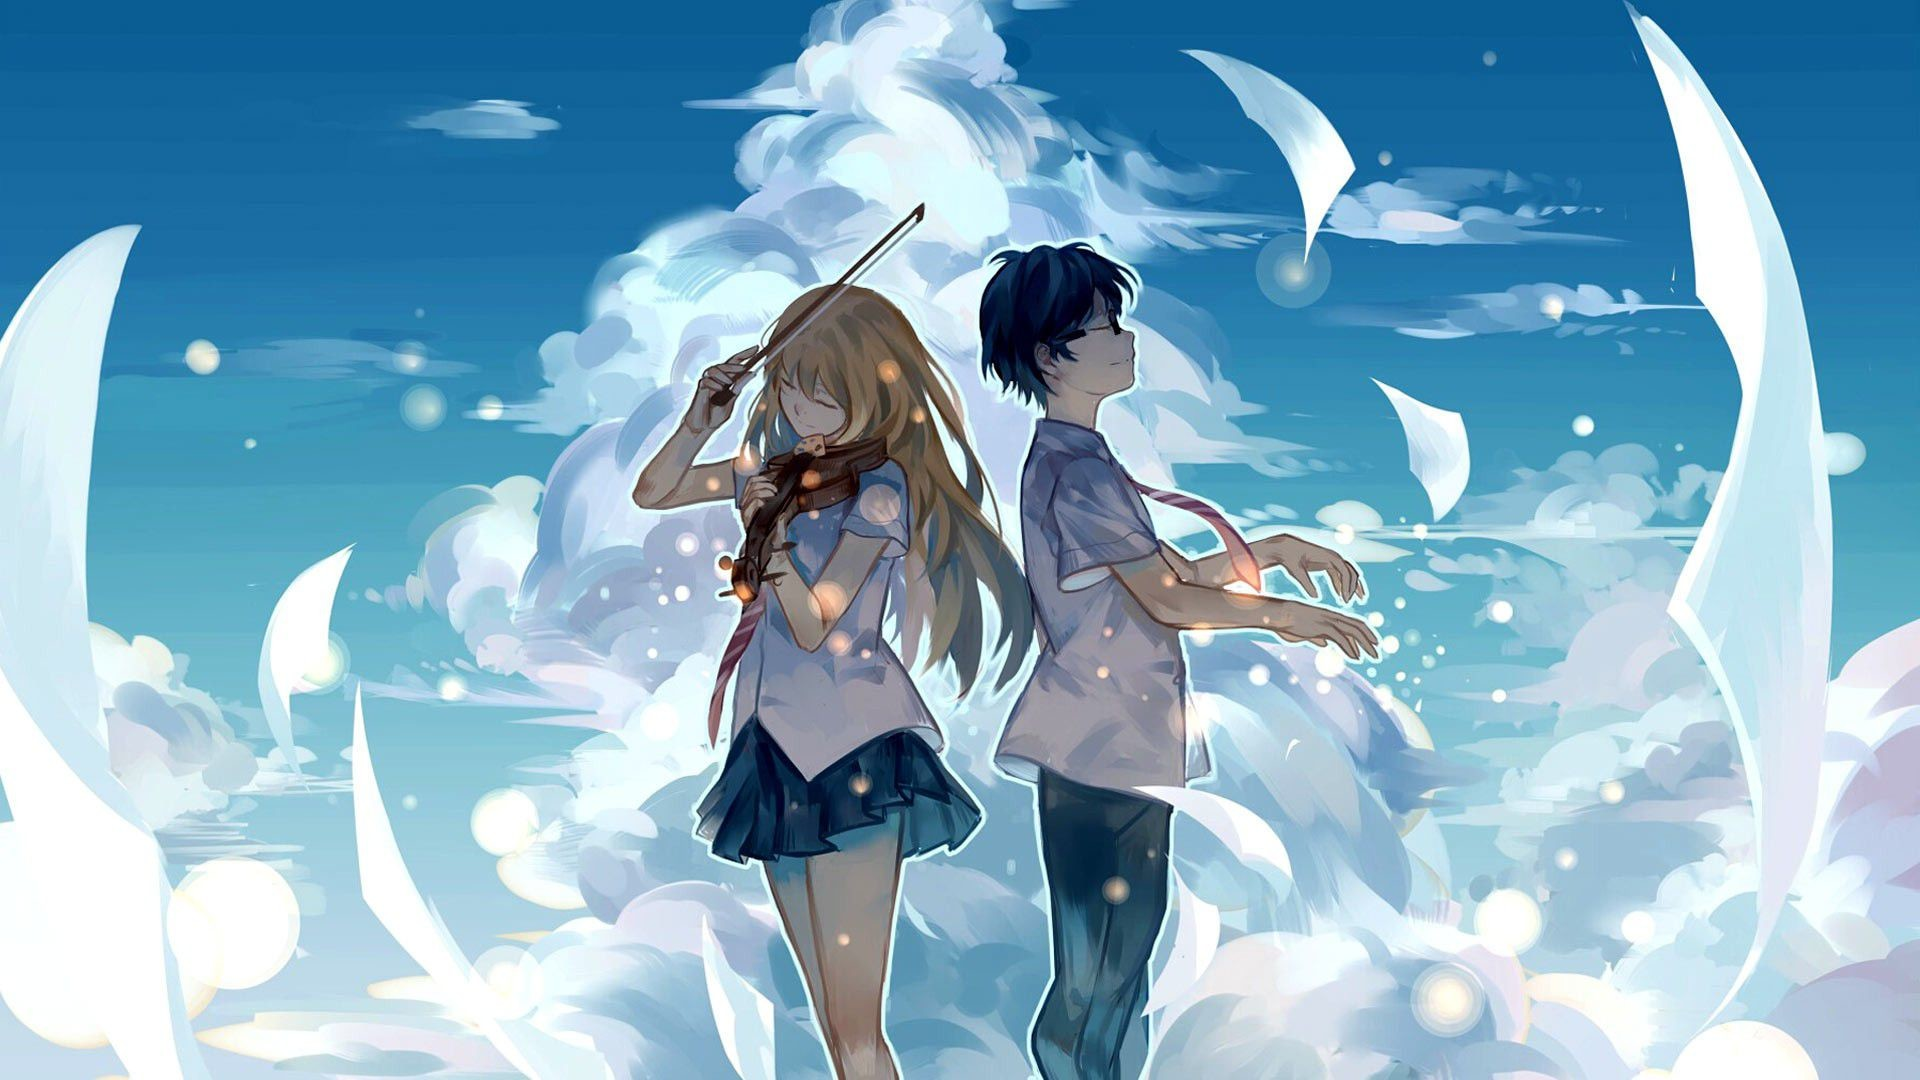 Cute Anime Couple Wallpaper 70 Images